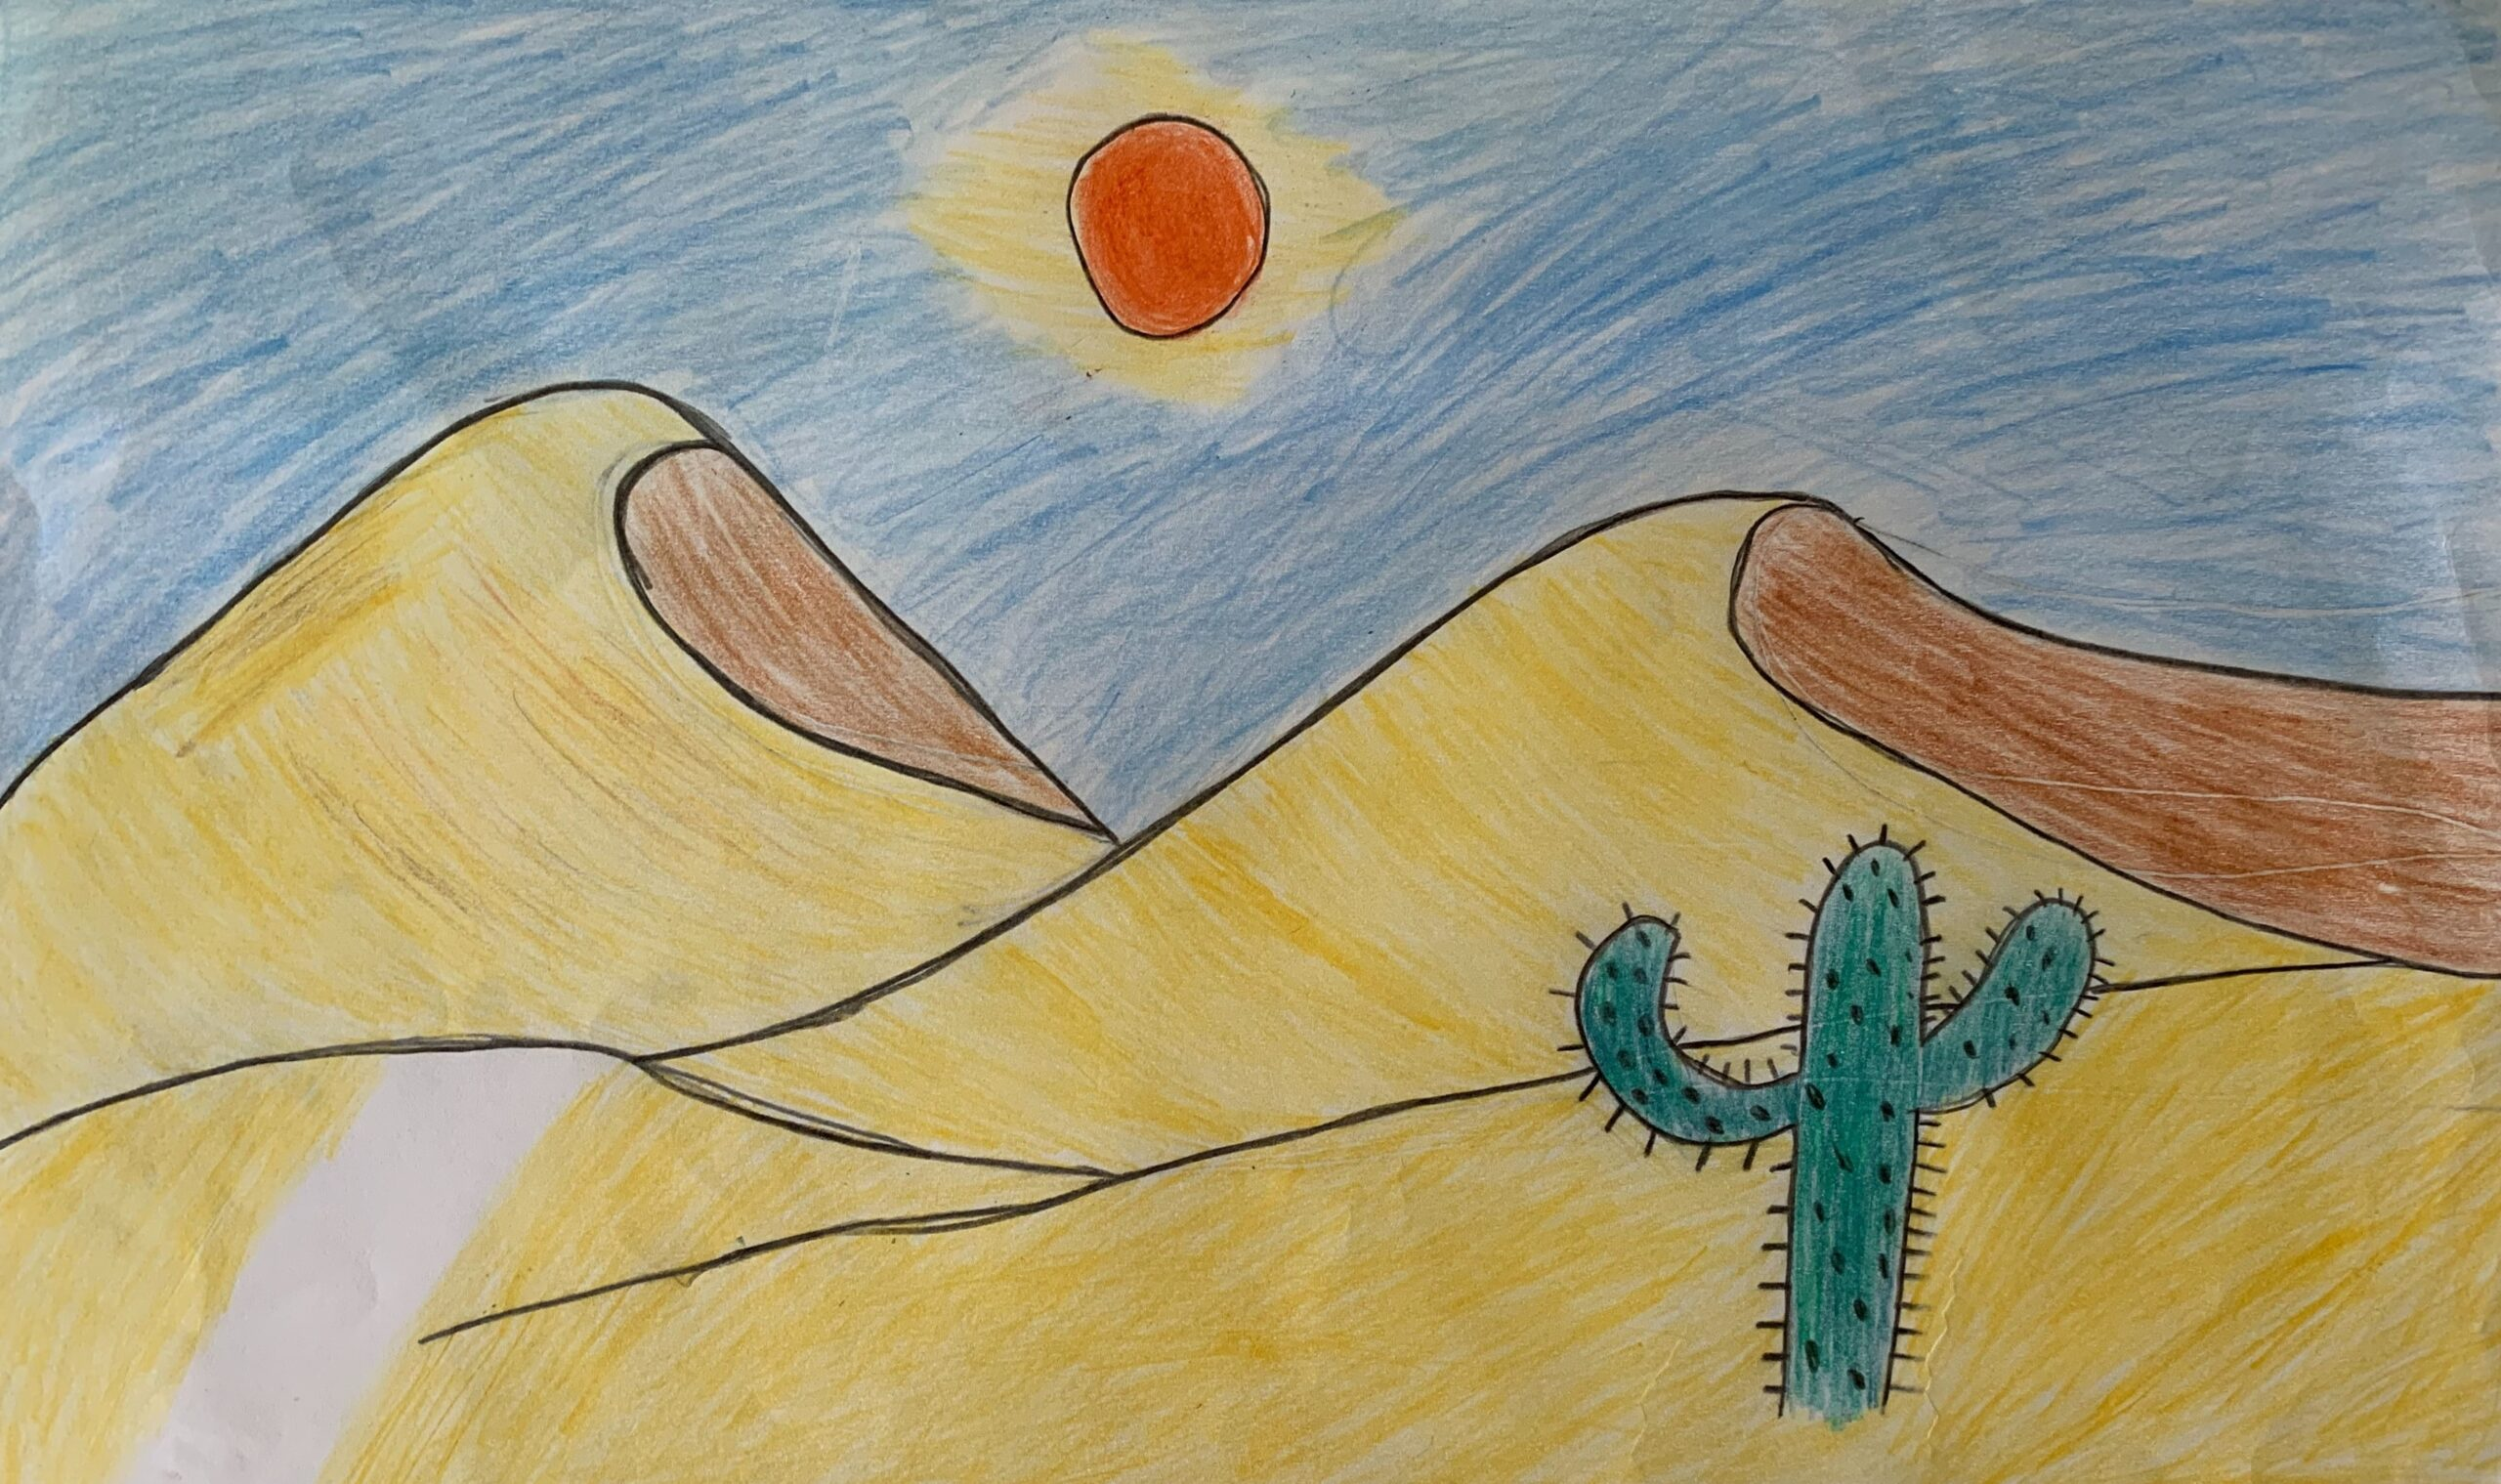 Desert in the UAE by Cyrus Donne Gonzales